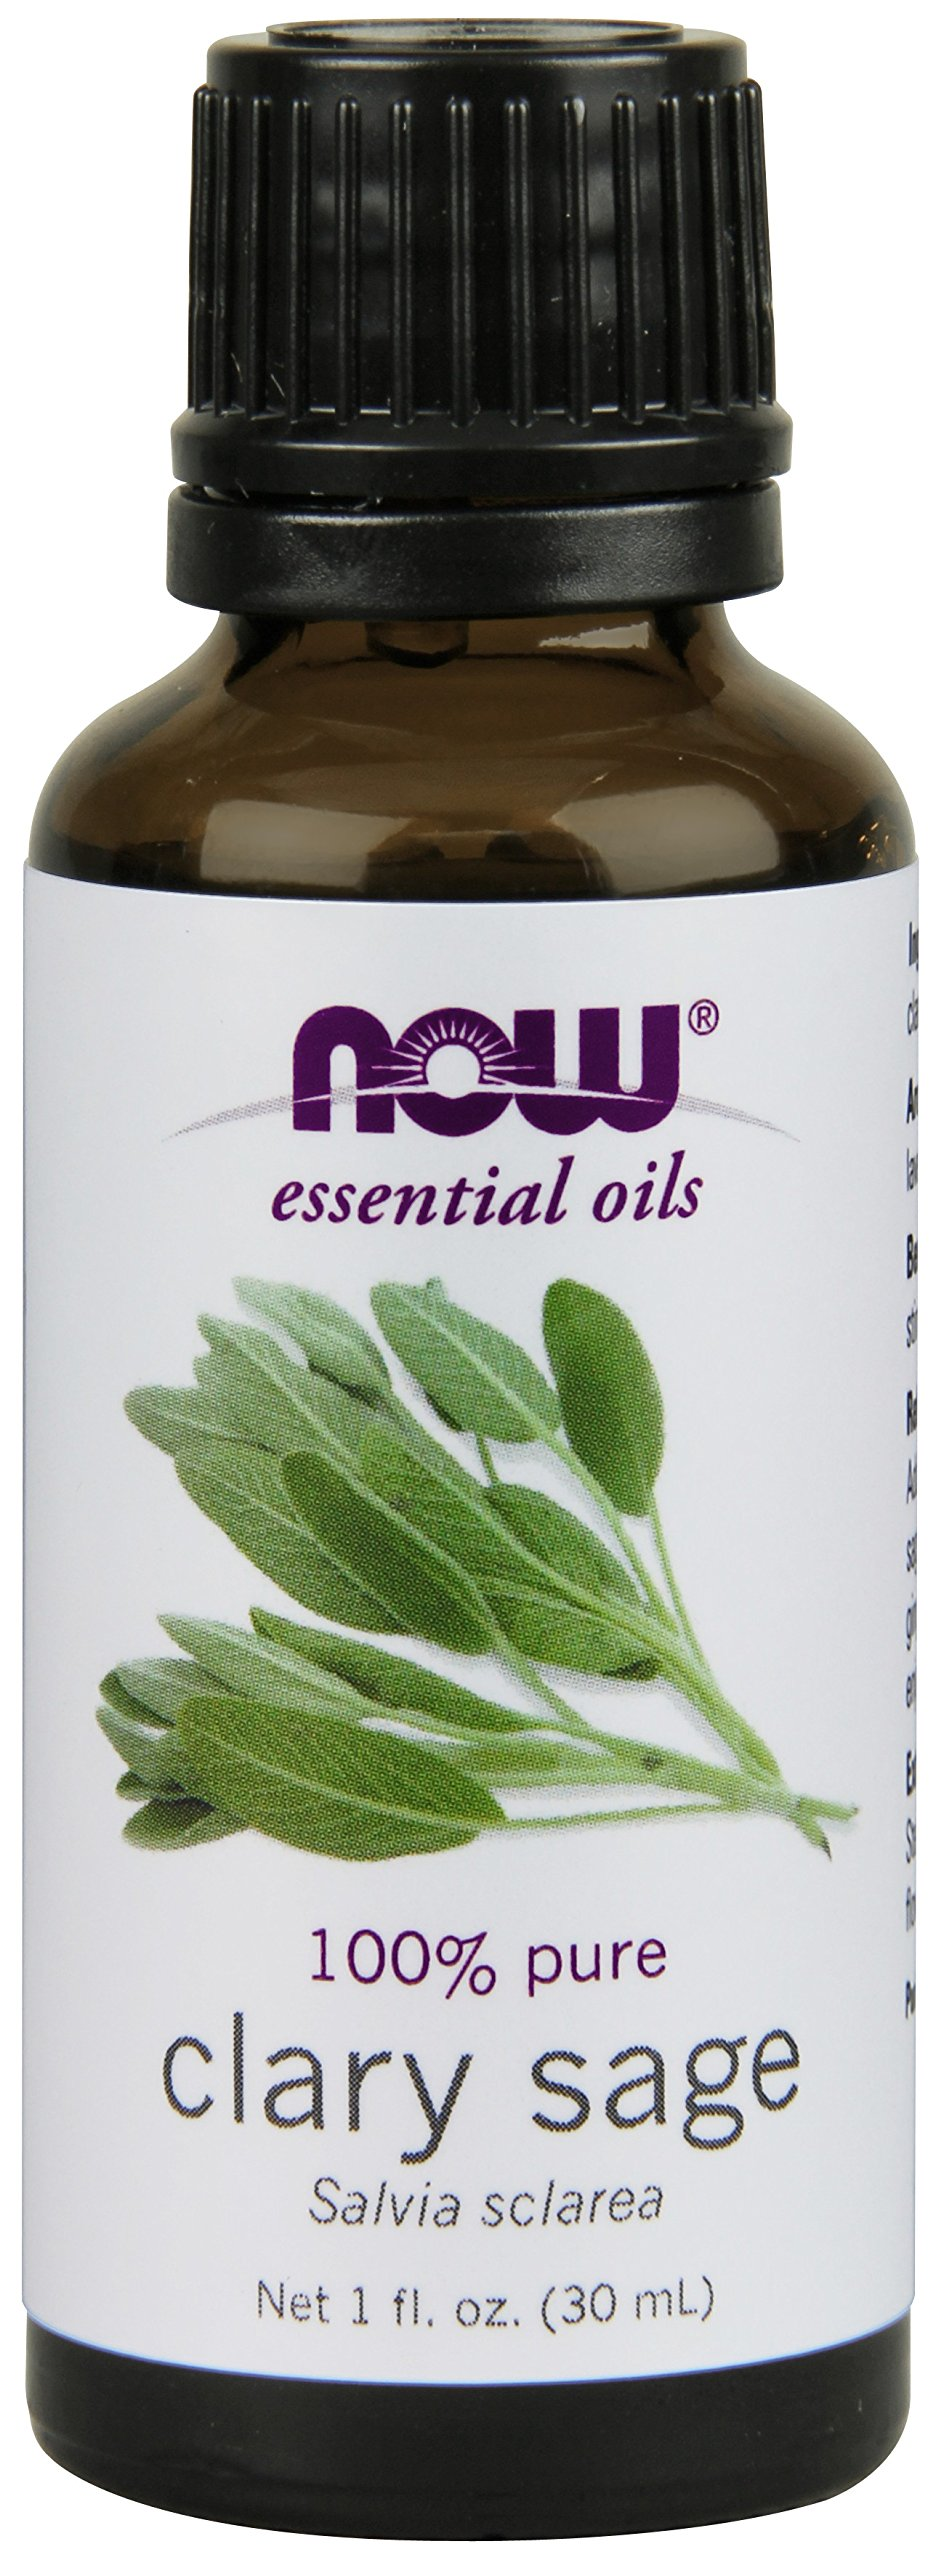 NOW Clary Sage Oil, 1-Ounce